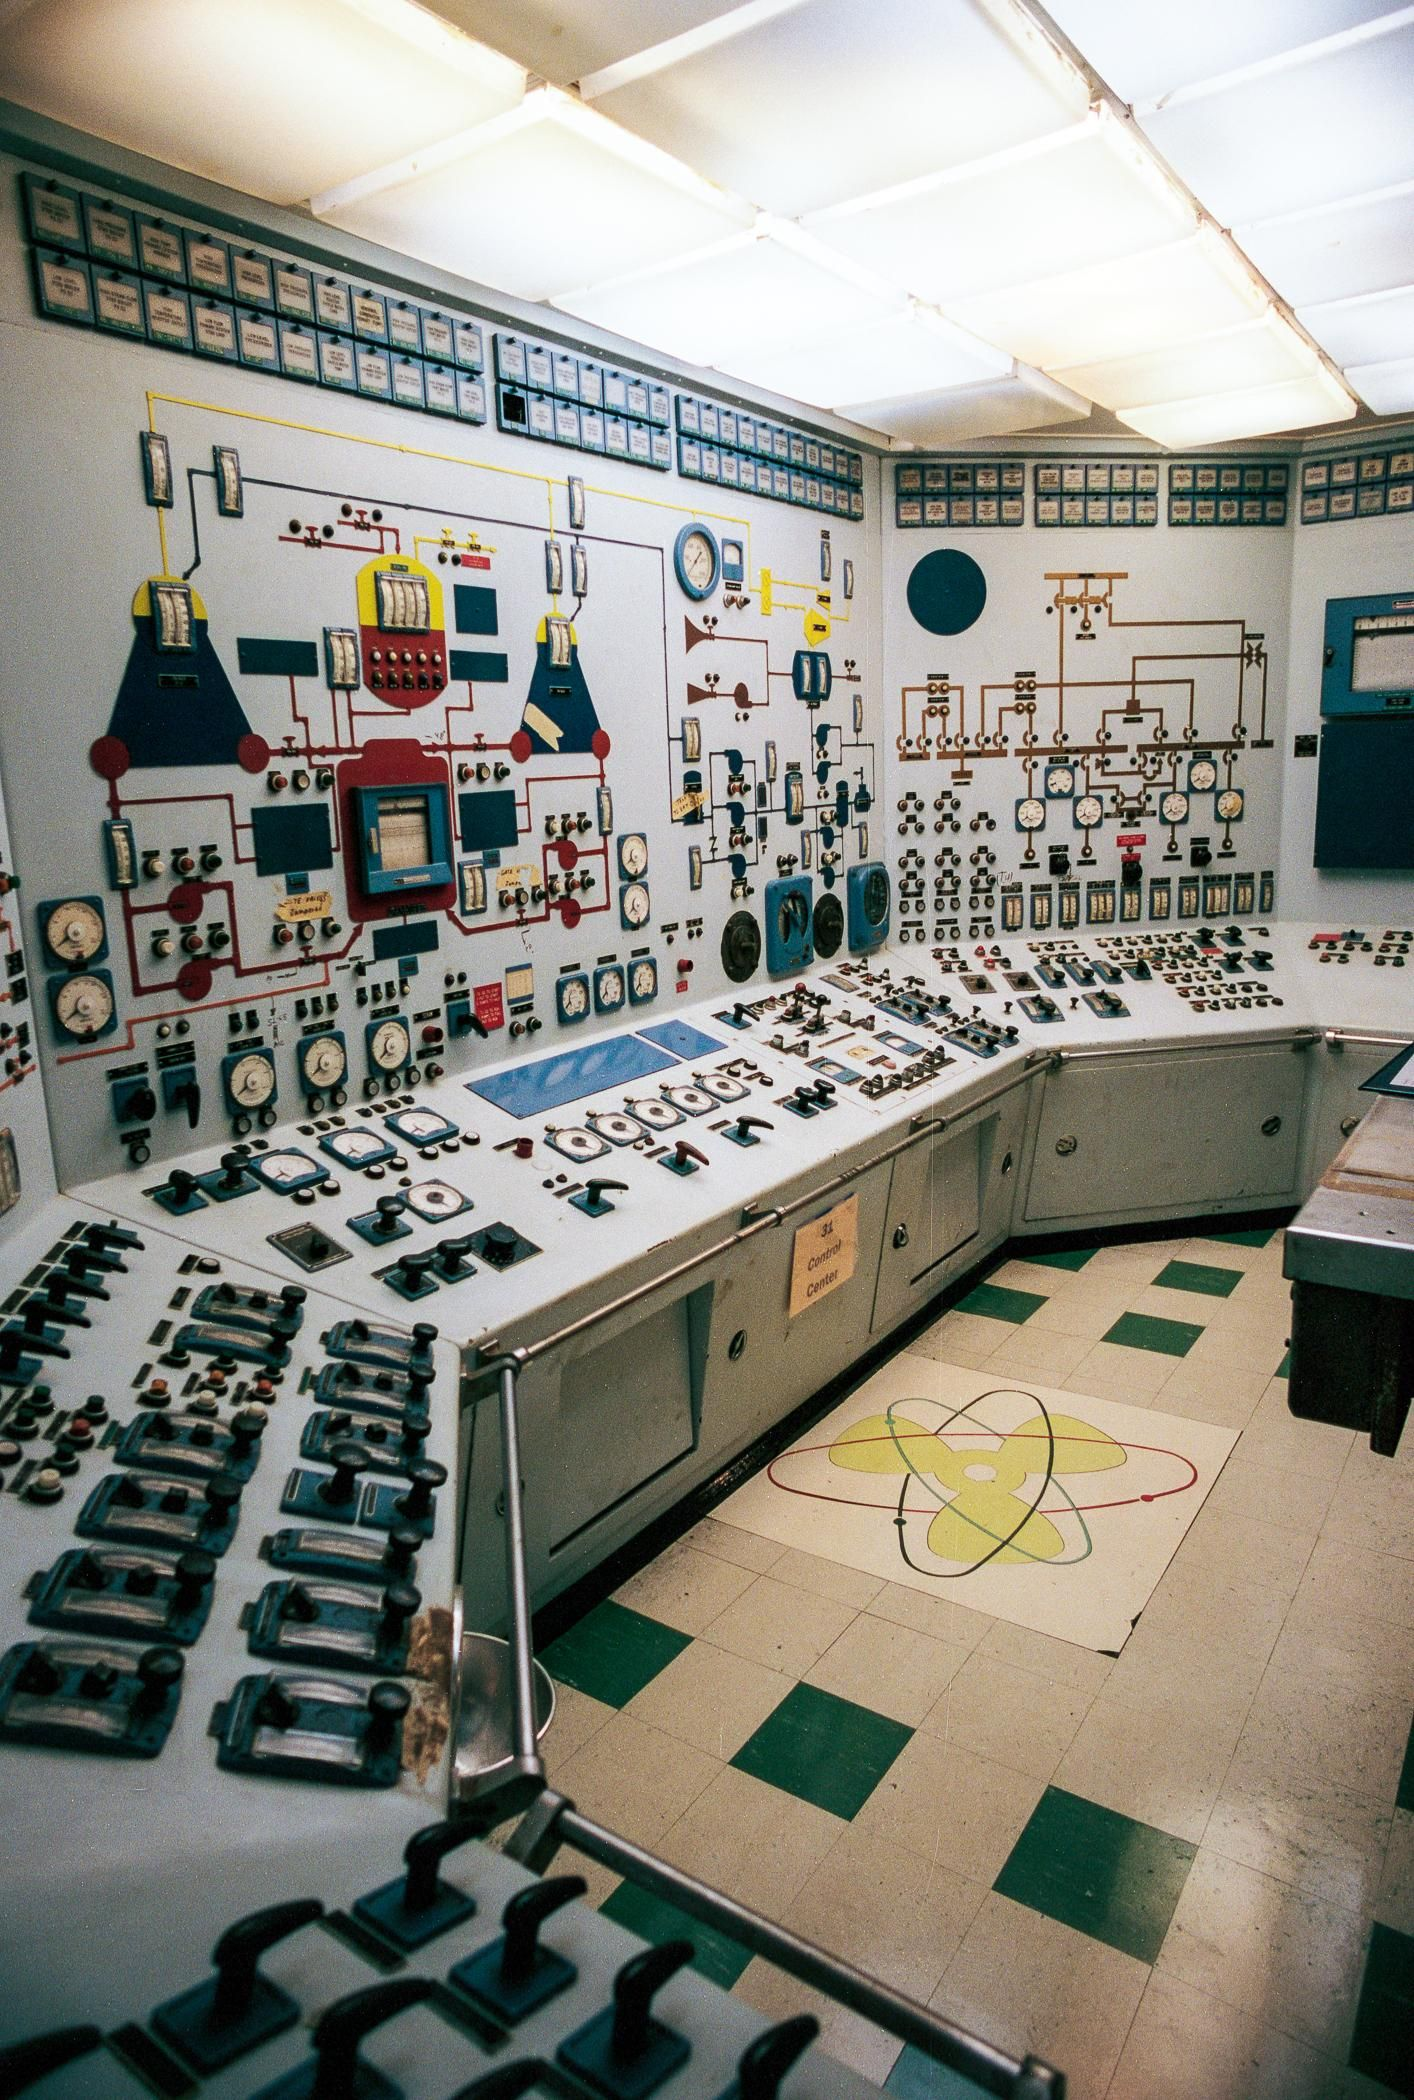 Cruise Ship Engine Room: Control Room Of The NS Savannah -- The 1959 Atoms For